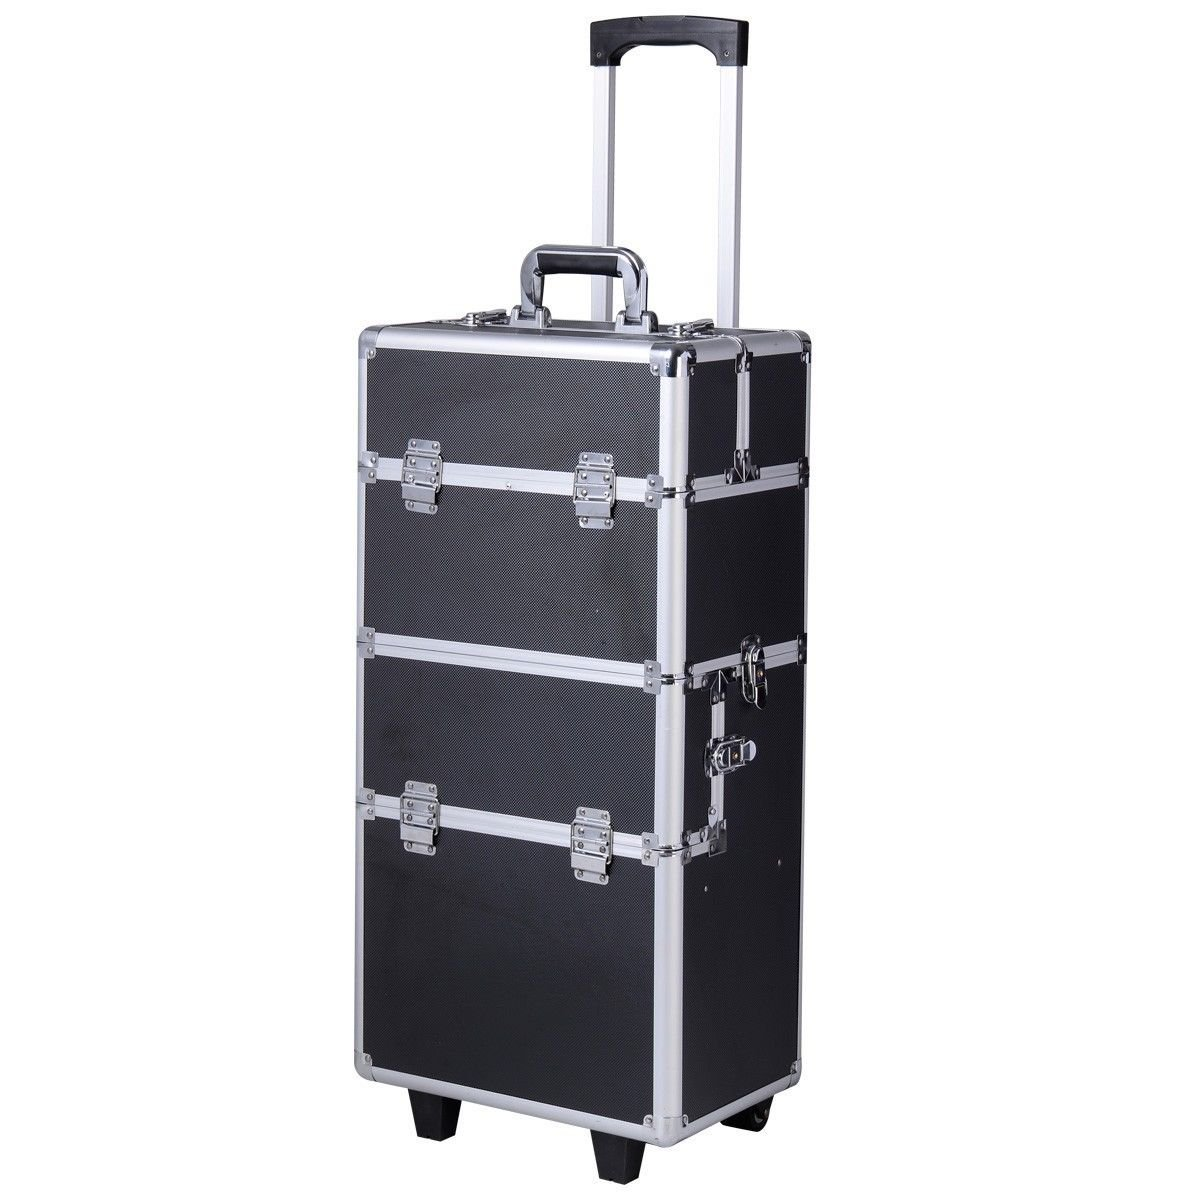 Comie 3 in 1 Pro Aluminum Rolling Makeup Train Case